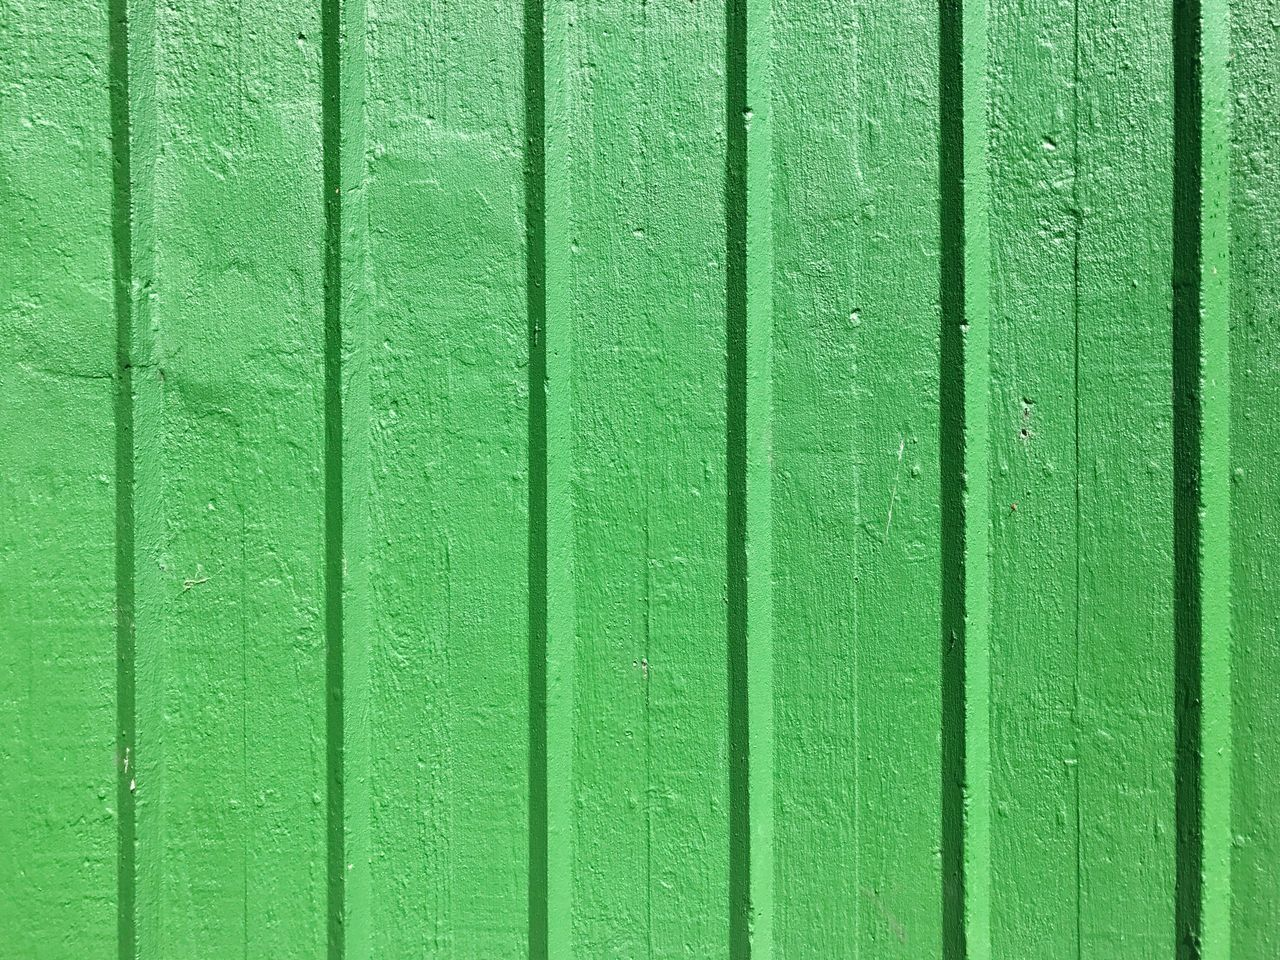 Wall Wooden Wall Green Wall Shadows & Lights Shadow And Light Light And Shadow Green Color Backgrounds Full Frame Textured  Close-up No People Pattern Day Outdoors